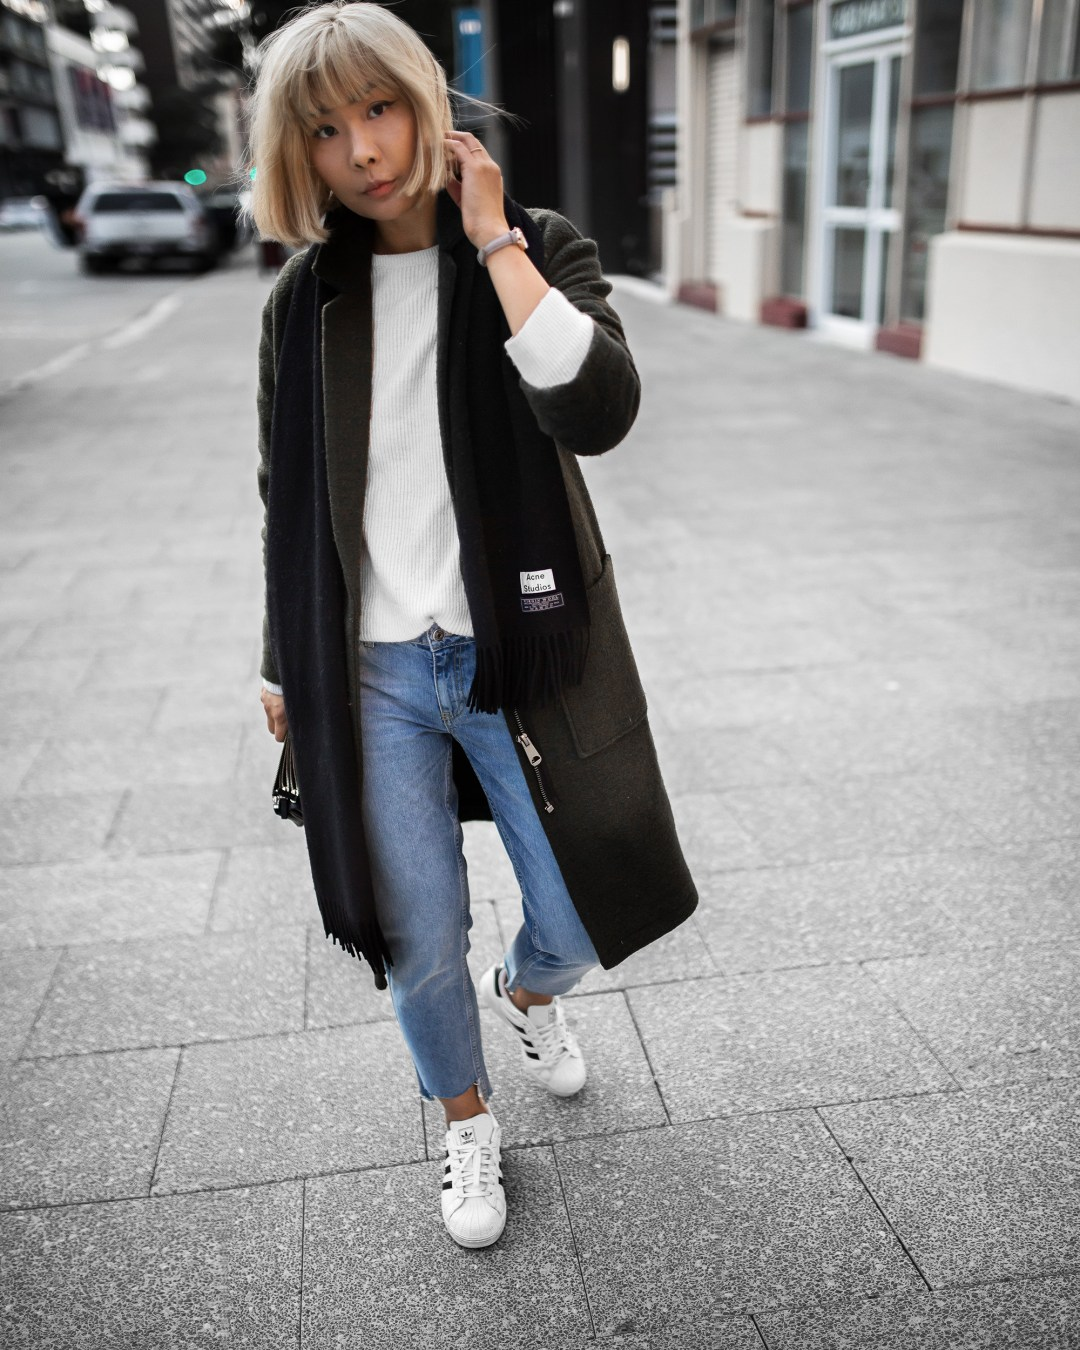 acne-scarf-khaki-coat-stepped-hem-jeans-outfit-inspiration-1-2-copy